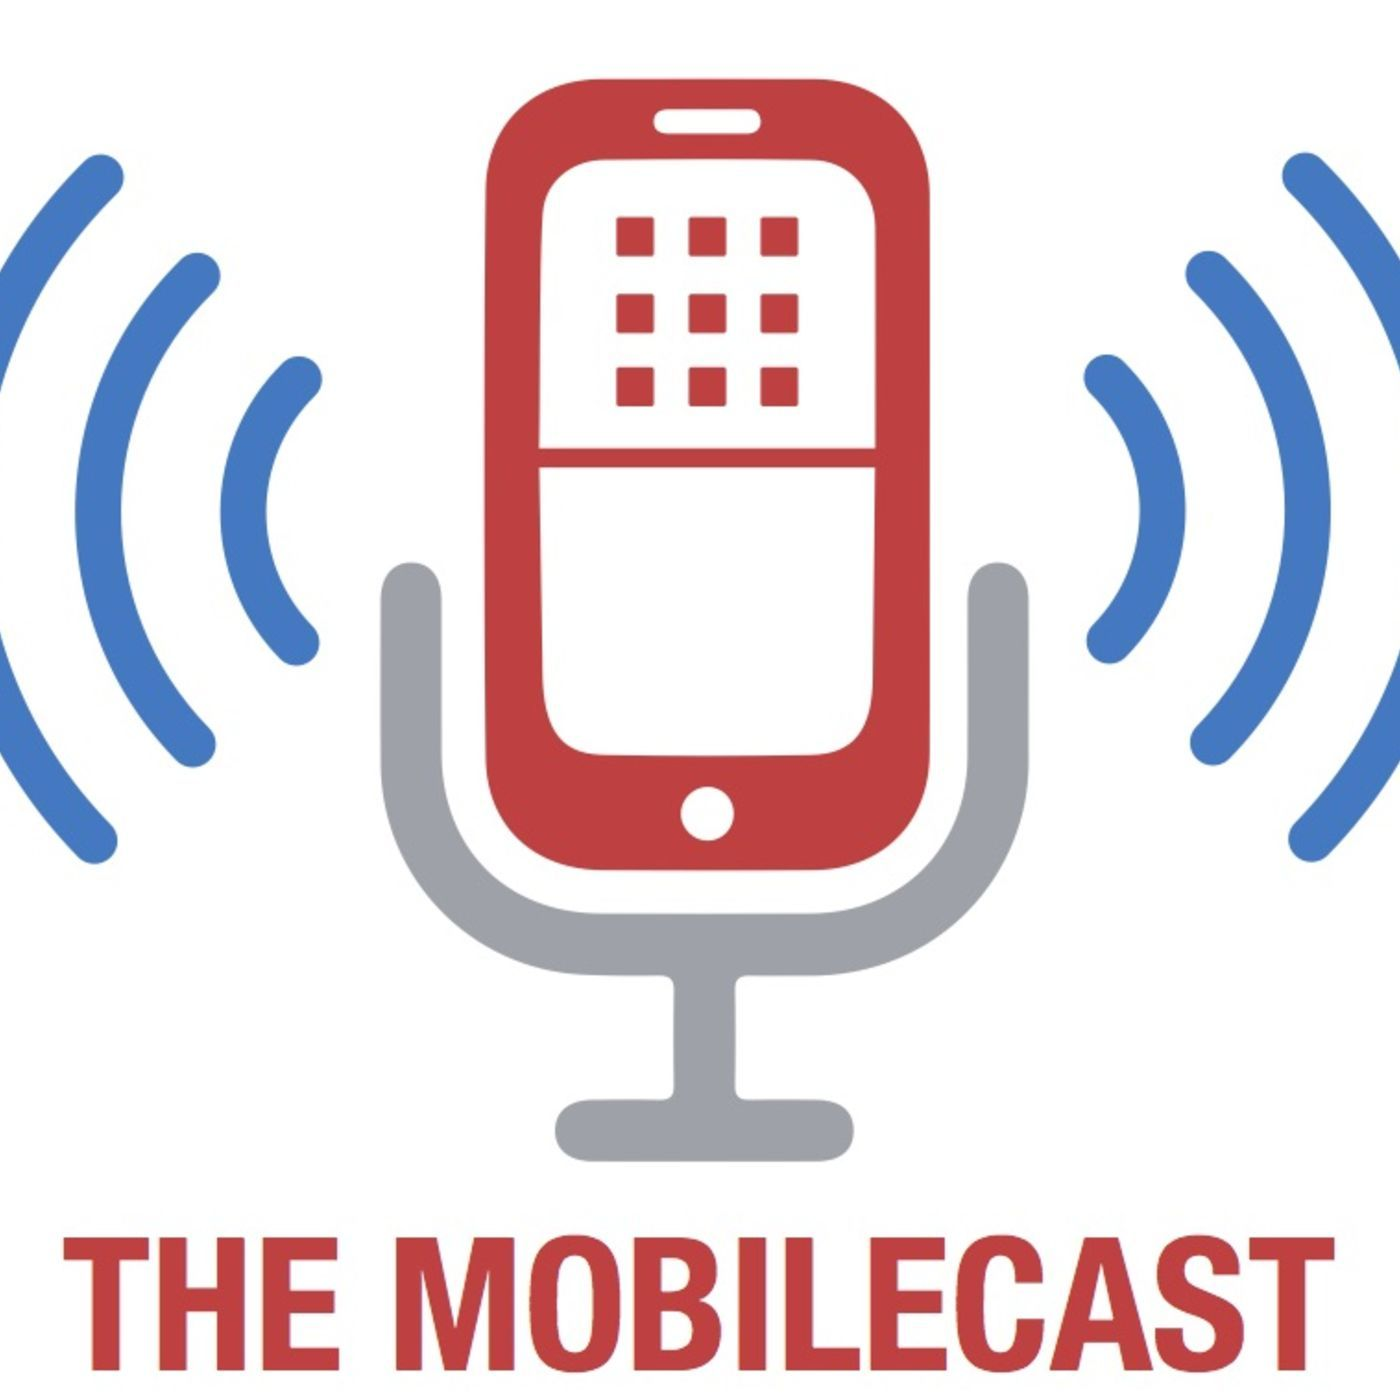 The Mobilecast #301 - S3 Ep1 - A roundtable with Brett Belding Swarna Podila and Philippe Winthrop